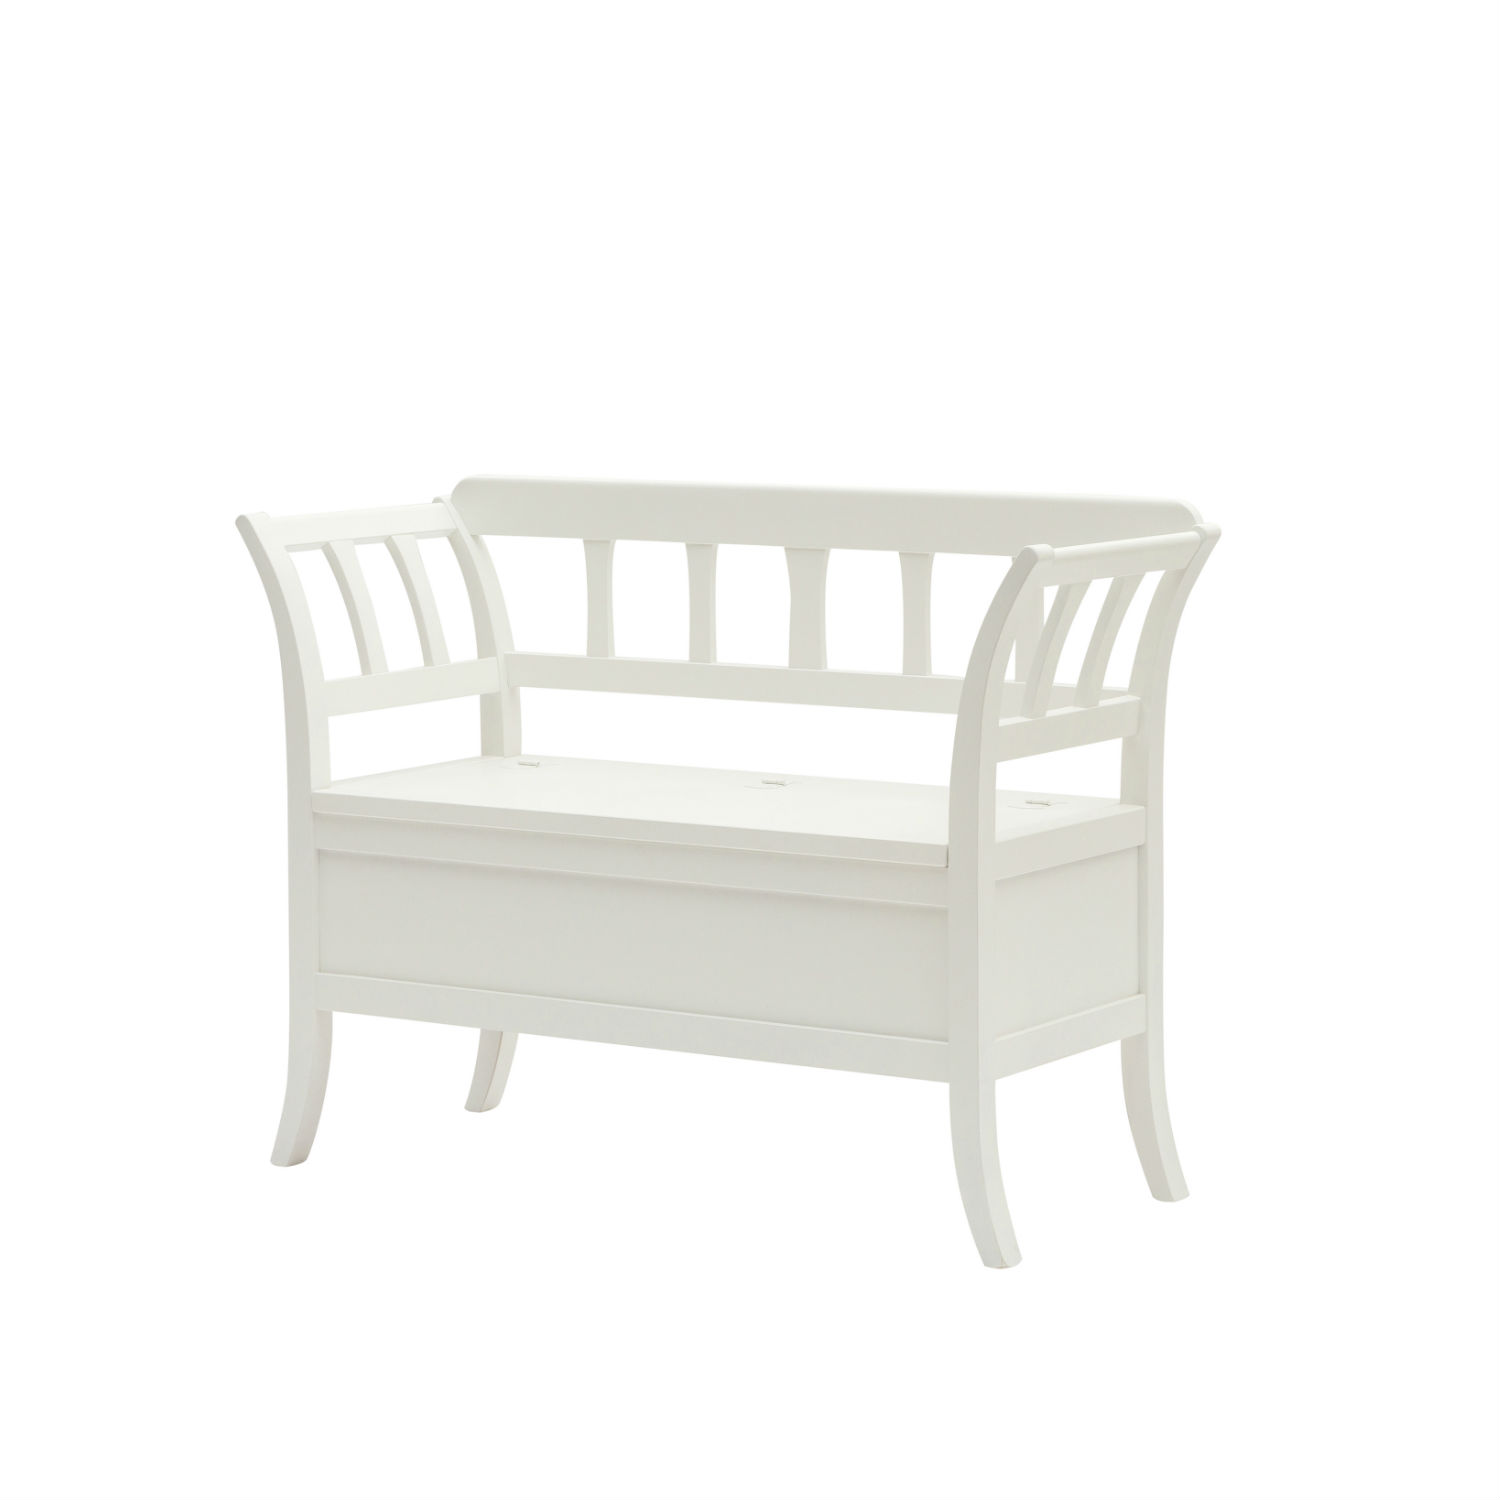 Cassapanca country shabby chic in legno con contenitore for Cassapanca shabby chic